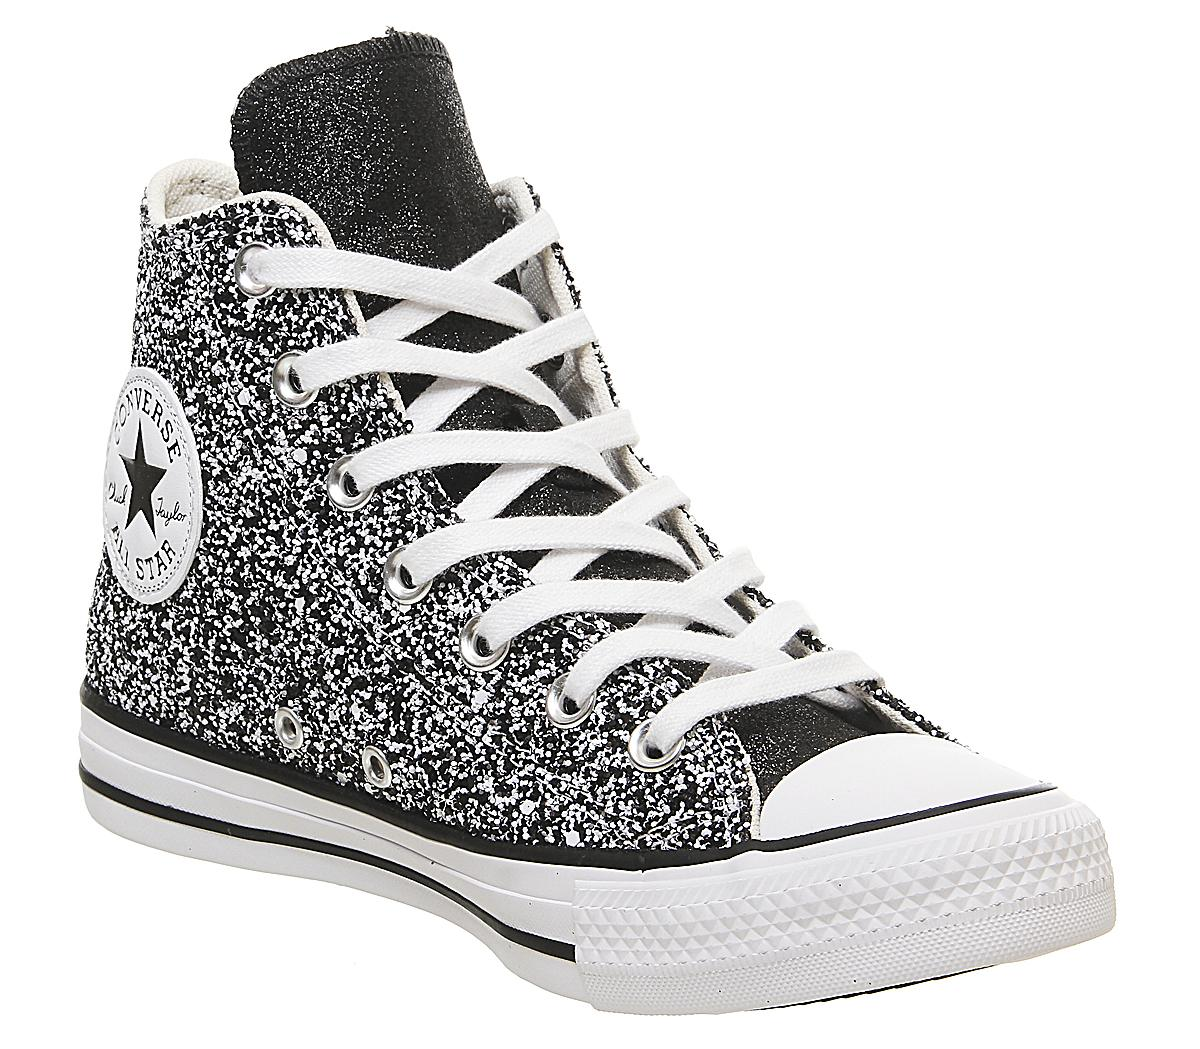 Black Silver White Glitter - Hers trainers